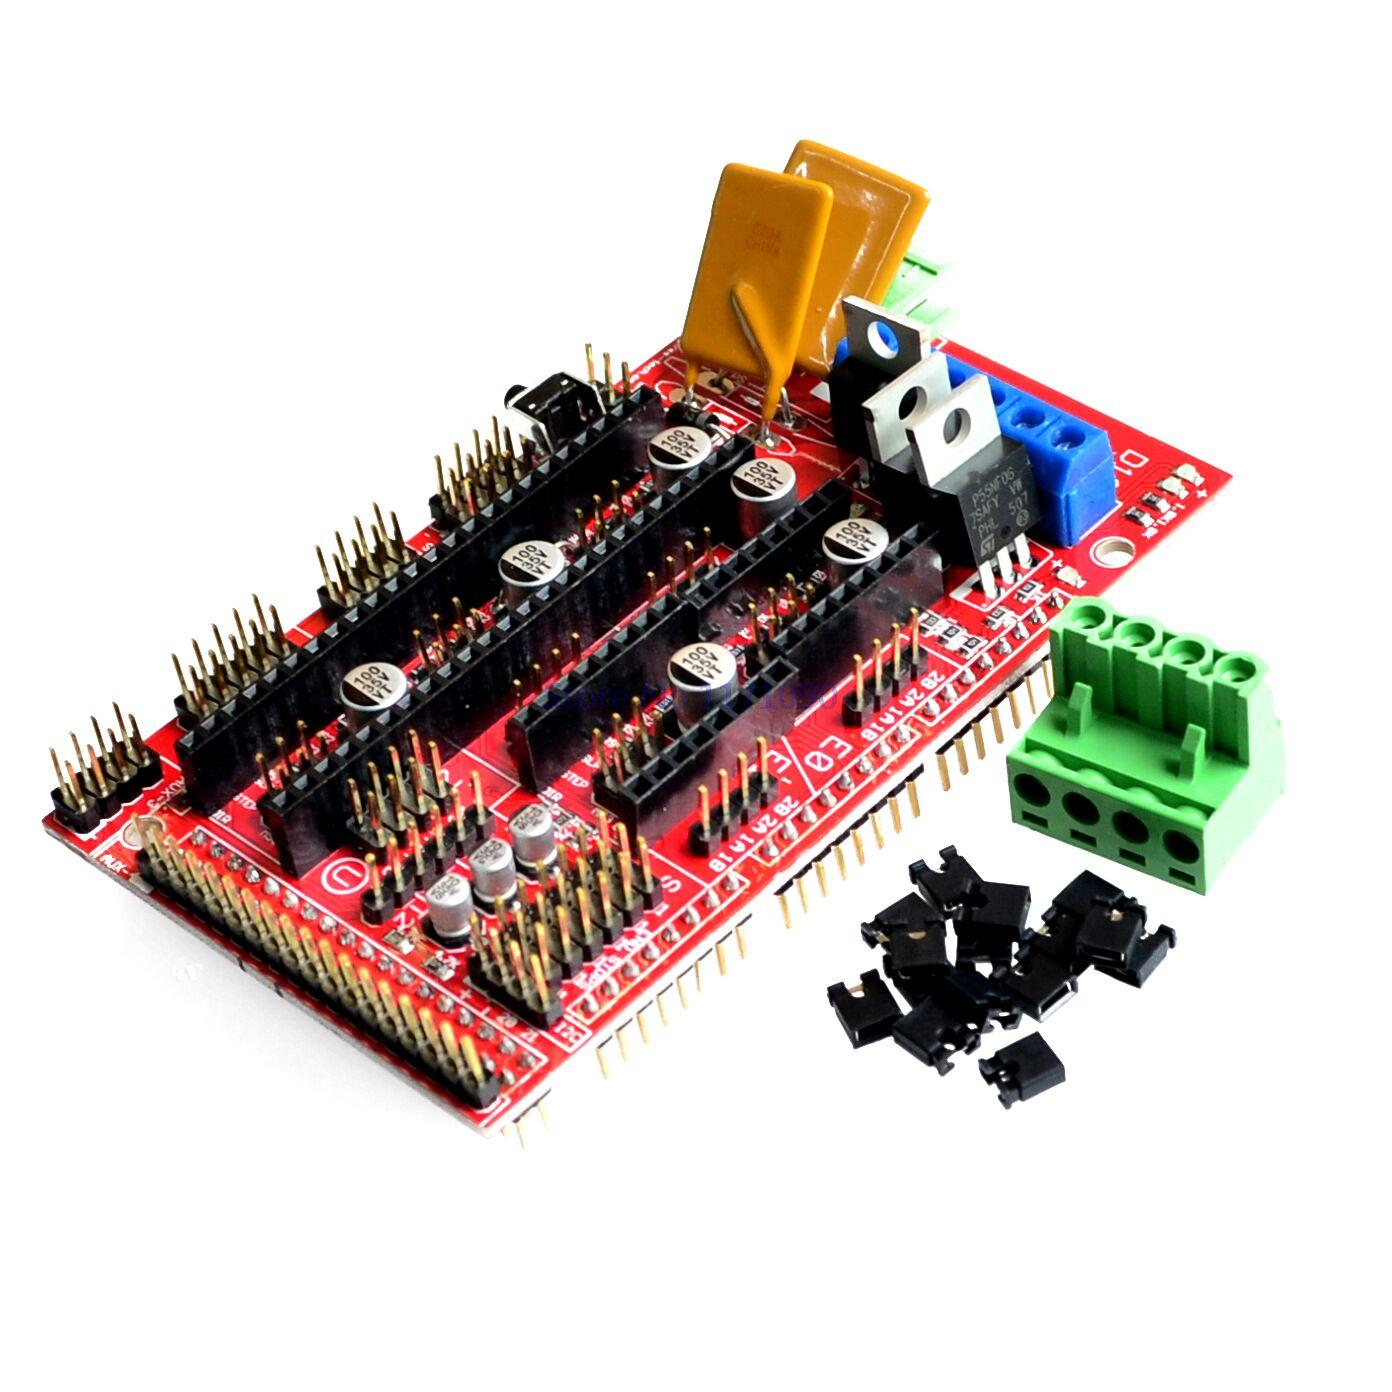 3D Printer Controller RAMPS 1.4 for Reprap Mendel Prusa i3 Arduino Boards C2L7